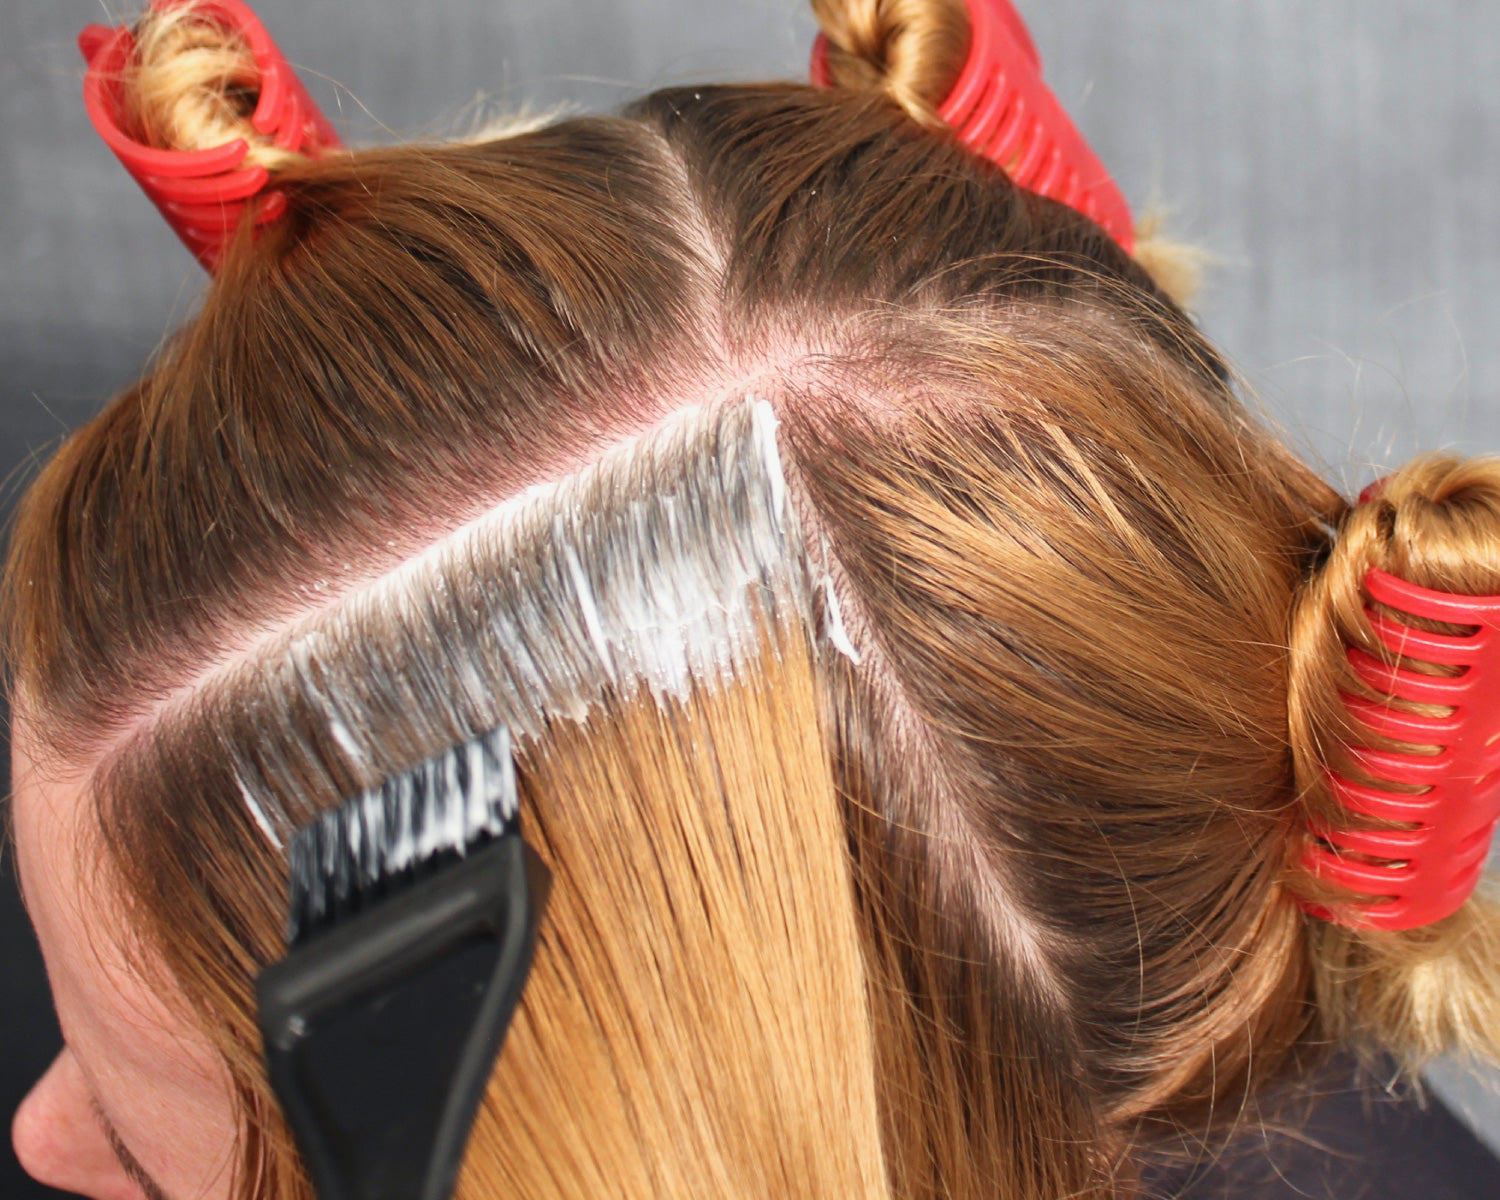 Hair 101 What Are Hot Roots And How Do You Fix Them My Hairdresser My Hairdresser Online